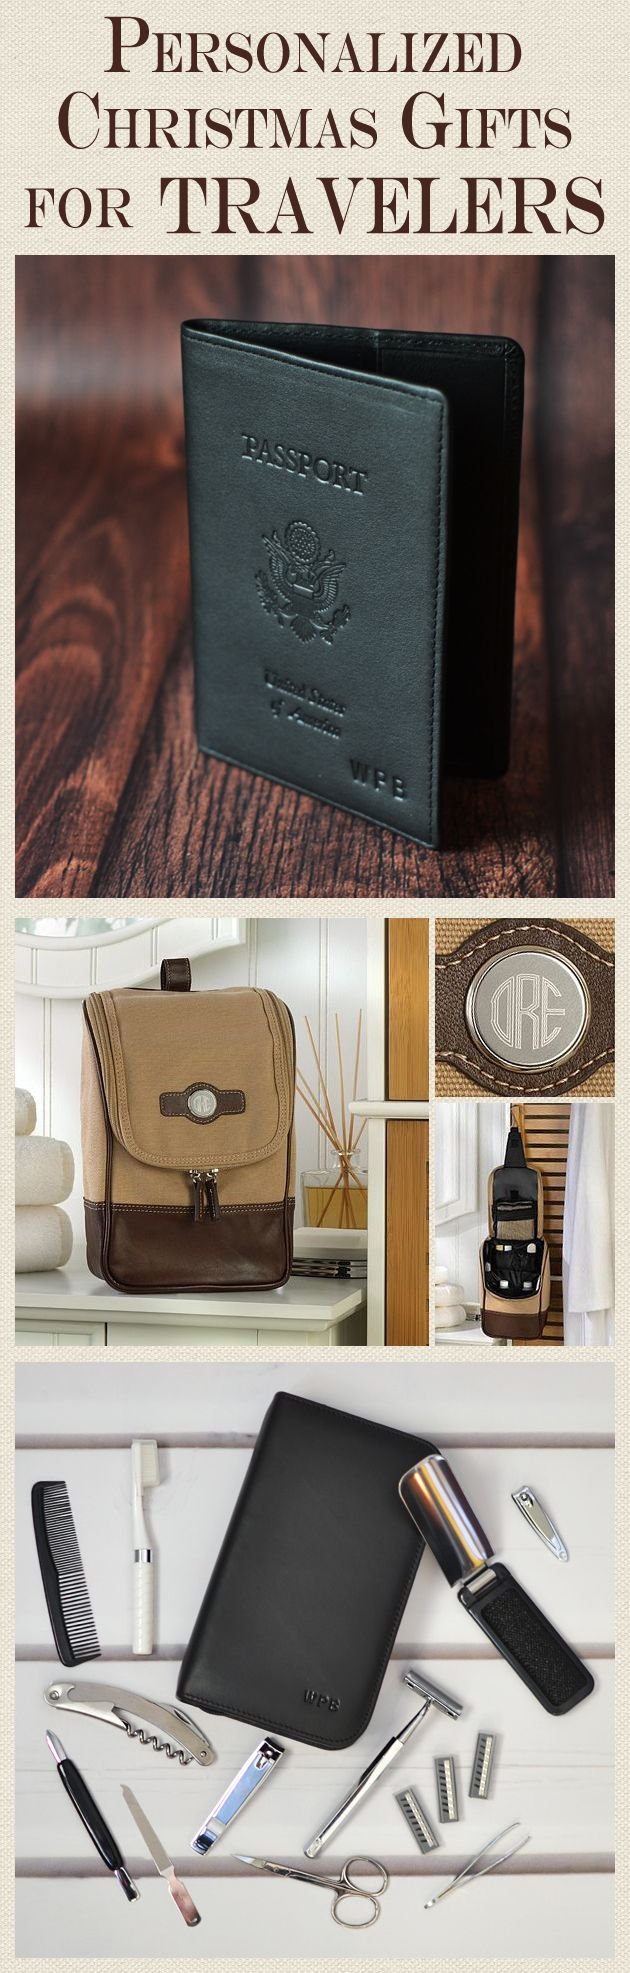 Unique gifts for the traveler or professional on-the-go, leather passports, travel grooming kits, messenger bags, and travel kits personalized with a name or initials are thoughtful gift ideas for men and women of all ages. These gifts and more can be ordered at http://myweddingreceptionideas.com/holiday_professional_corporate_executive_gifts.asp